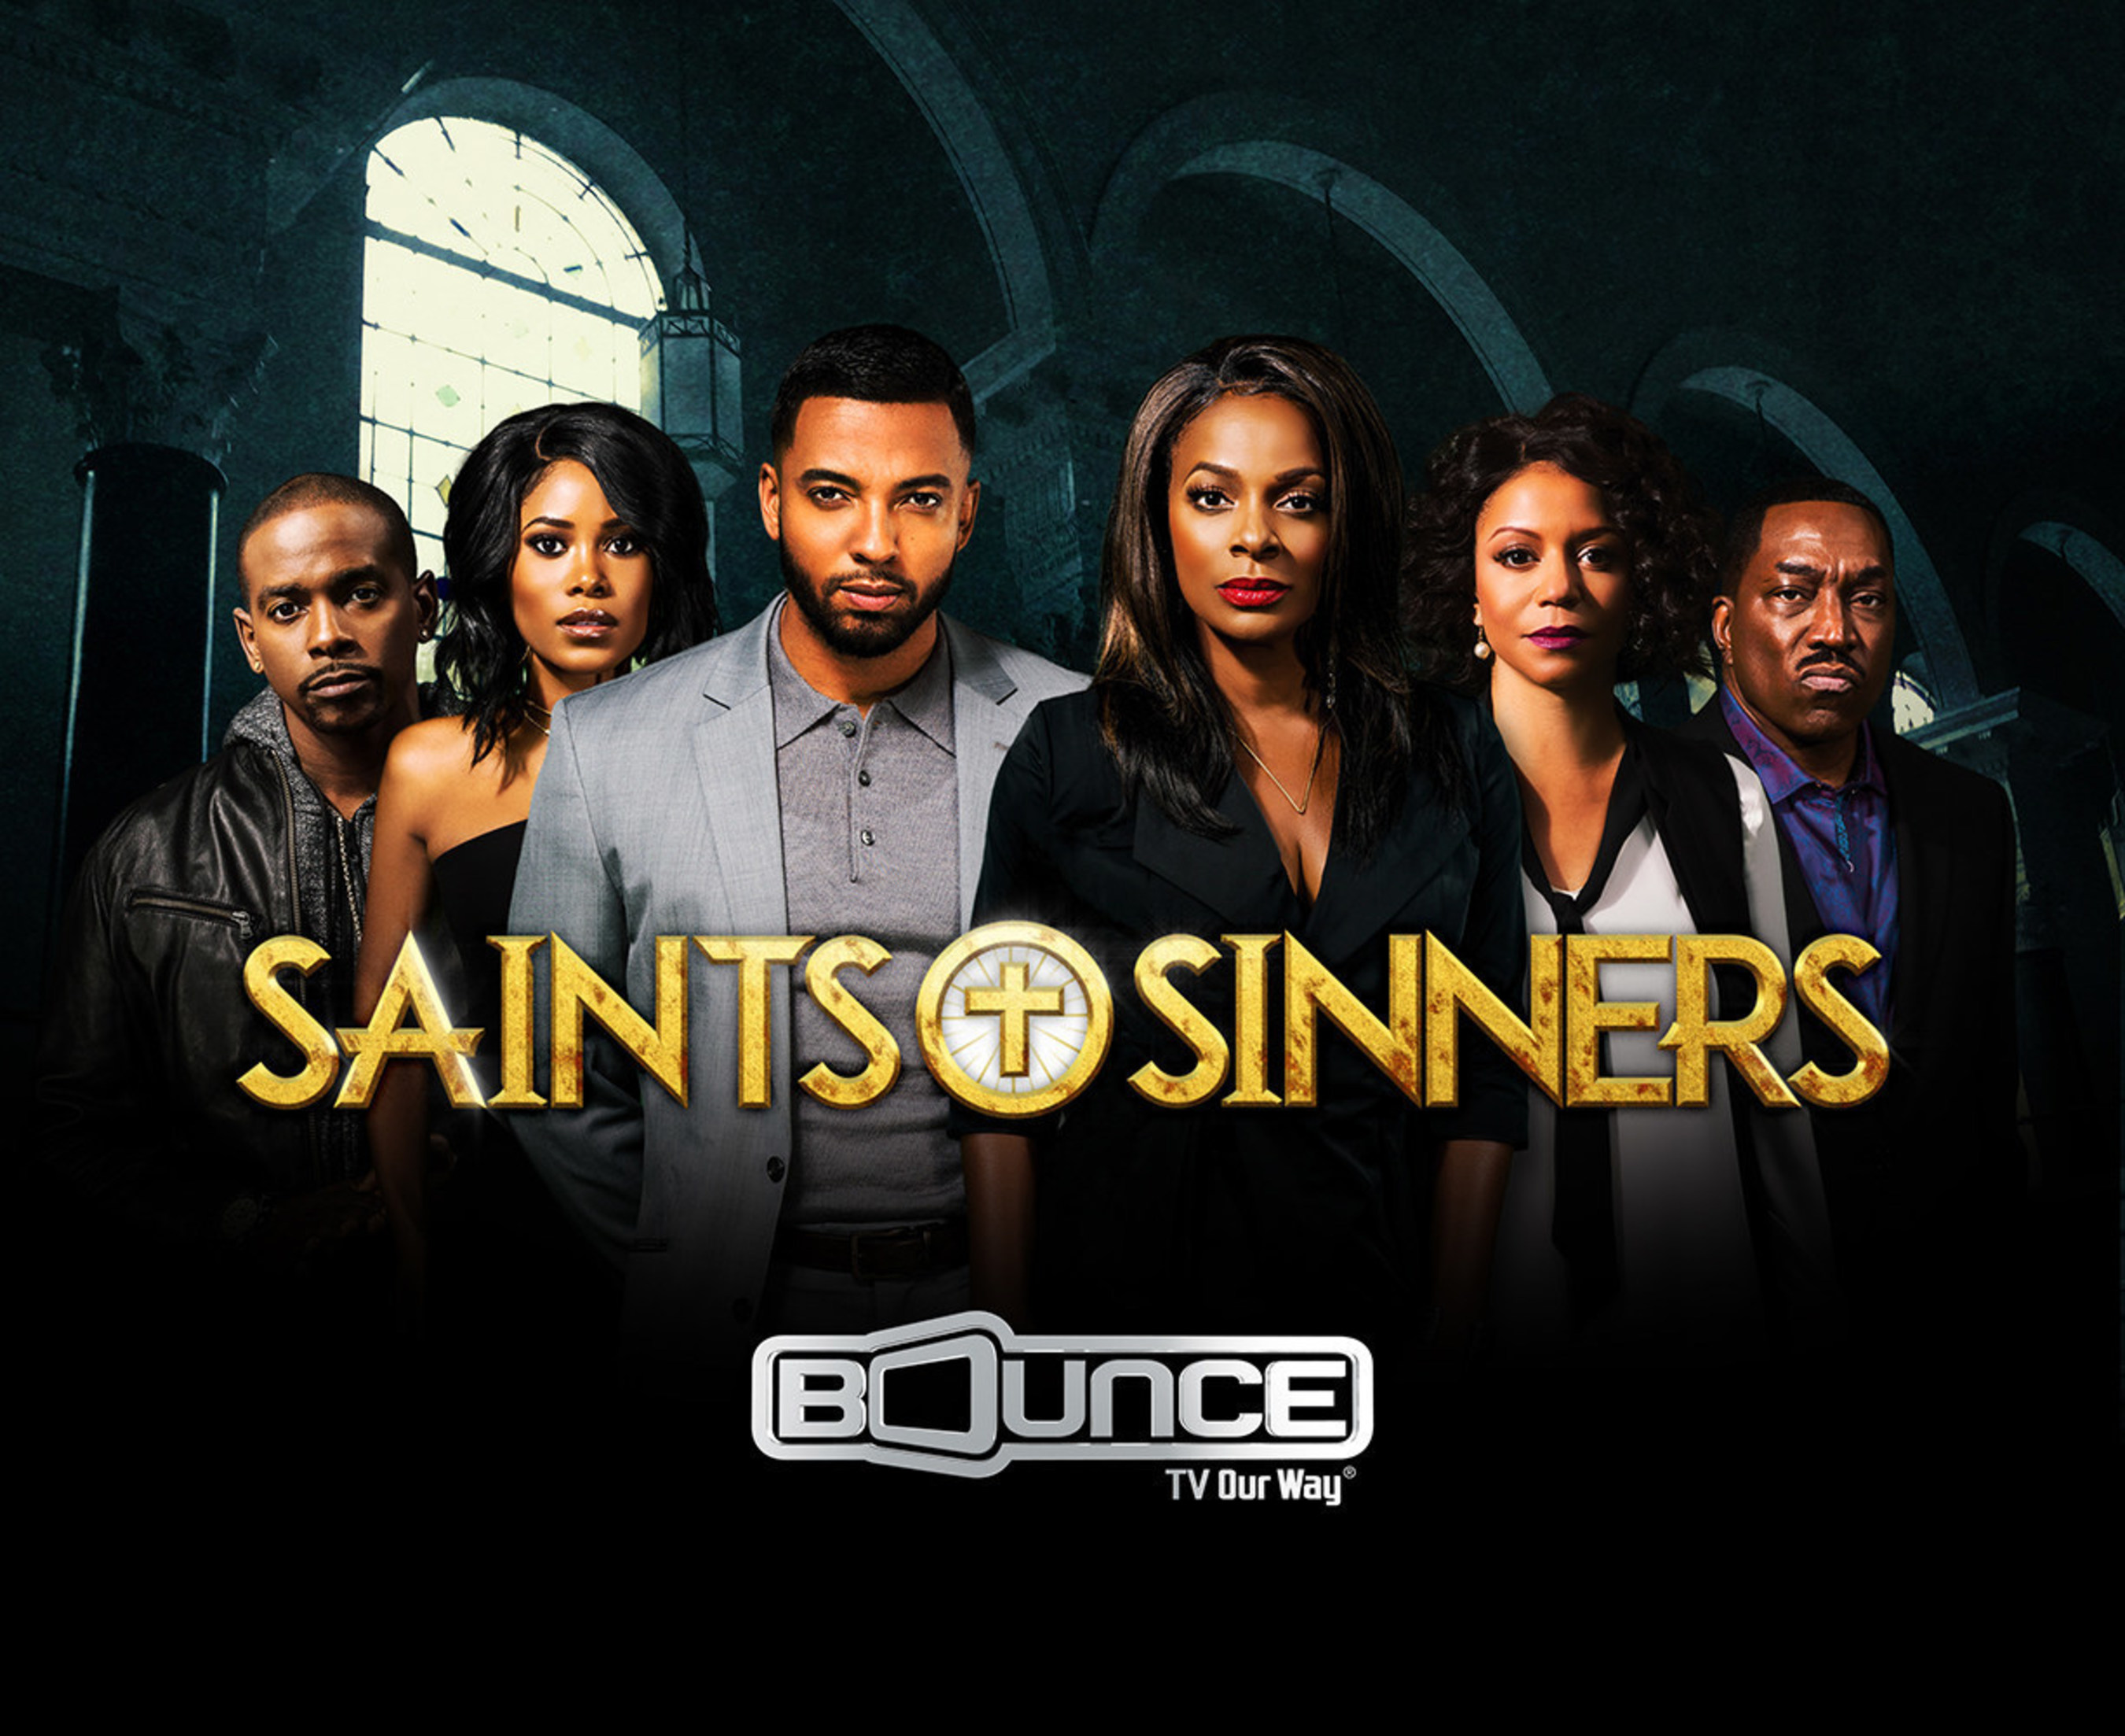 The murderer is revealed and questions are answered - while new ones arise - in the explosive season finale of Bounce TV's smash-hit original drama series Saints & Sinners Sunday, April 24 at 9:00 p.m. ET, 8:00 p.m. CT.  Visit BounceTV.com for local channel information.